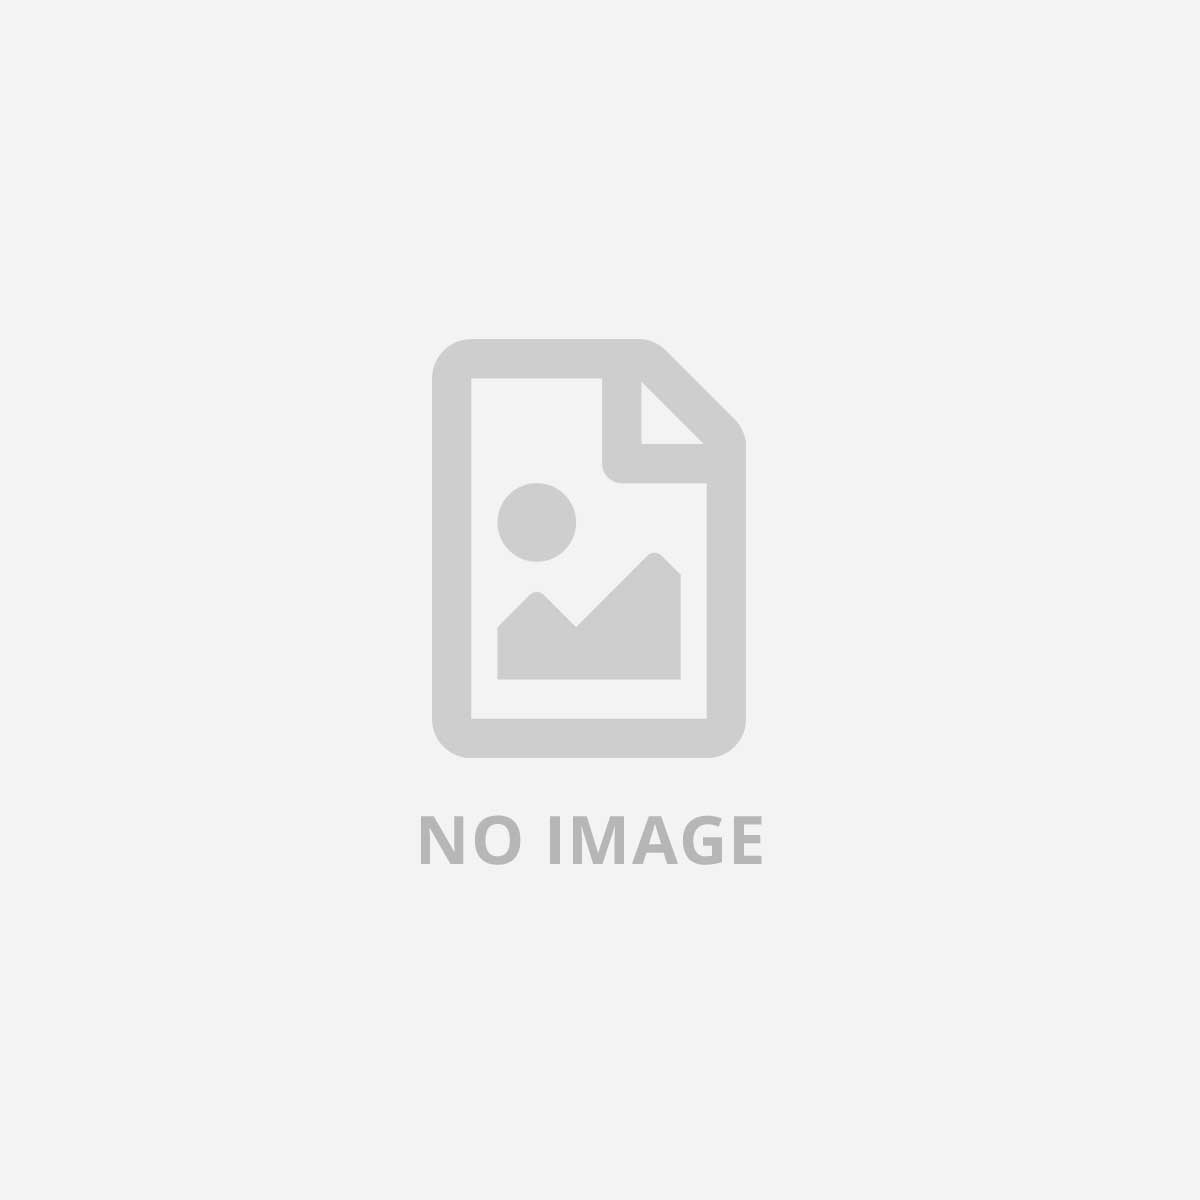 BLACK AND DECKER BLACKDECKER TRAPANO/AVVITATORE